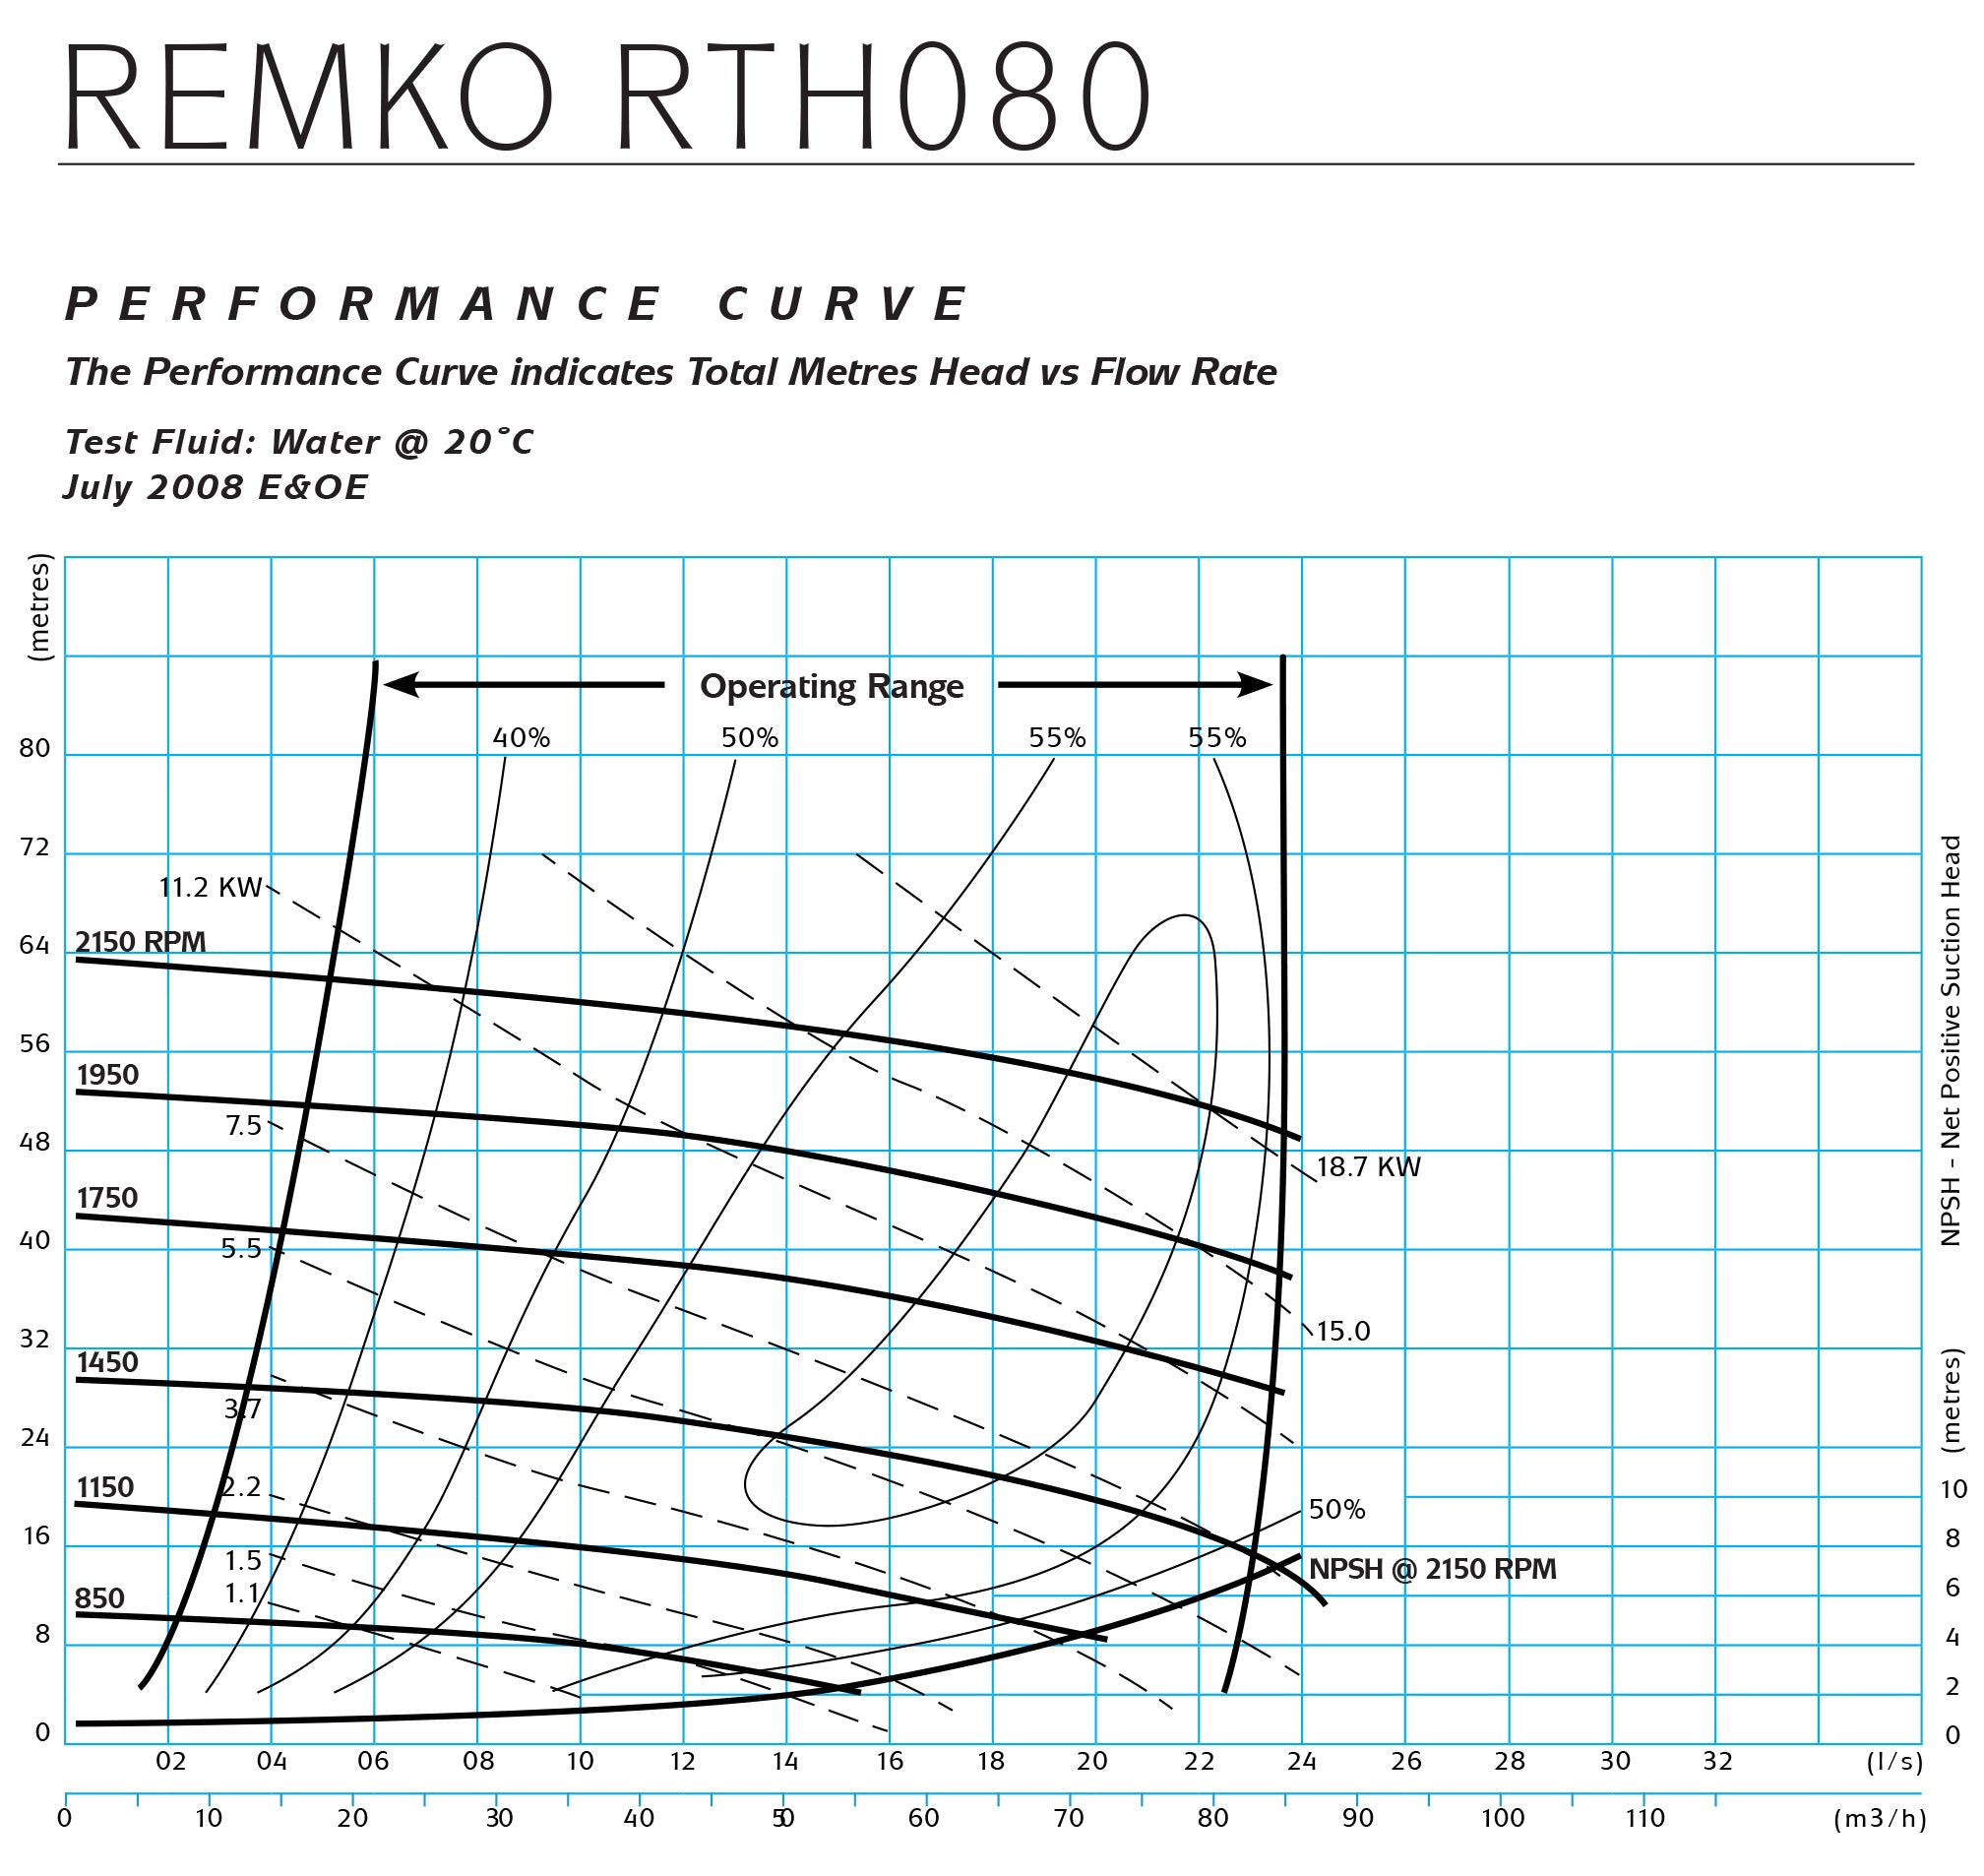 RT080 performance curve